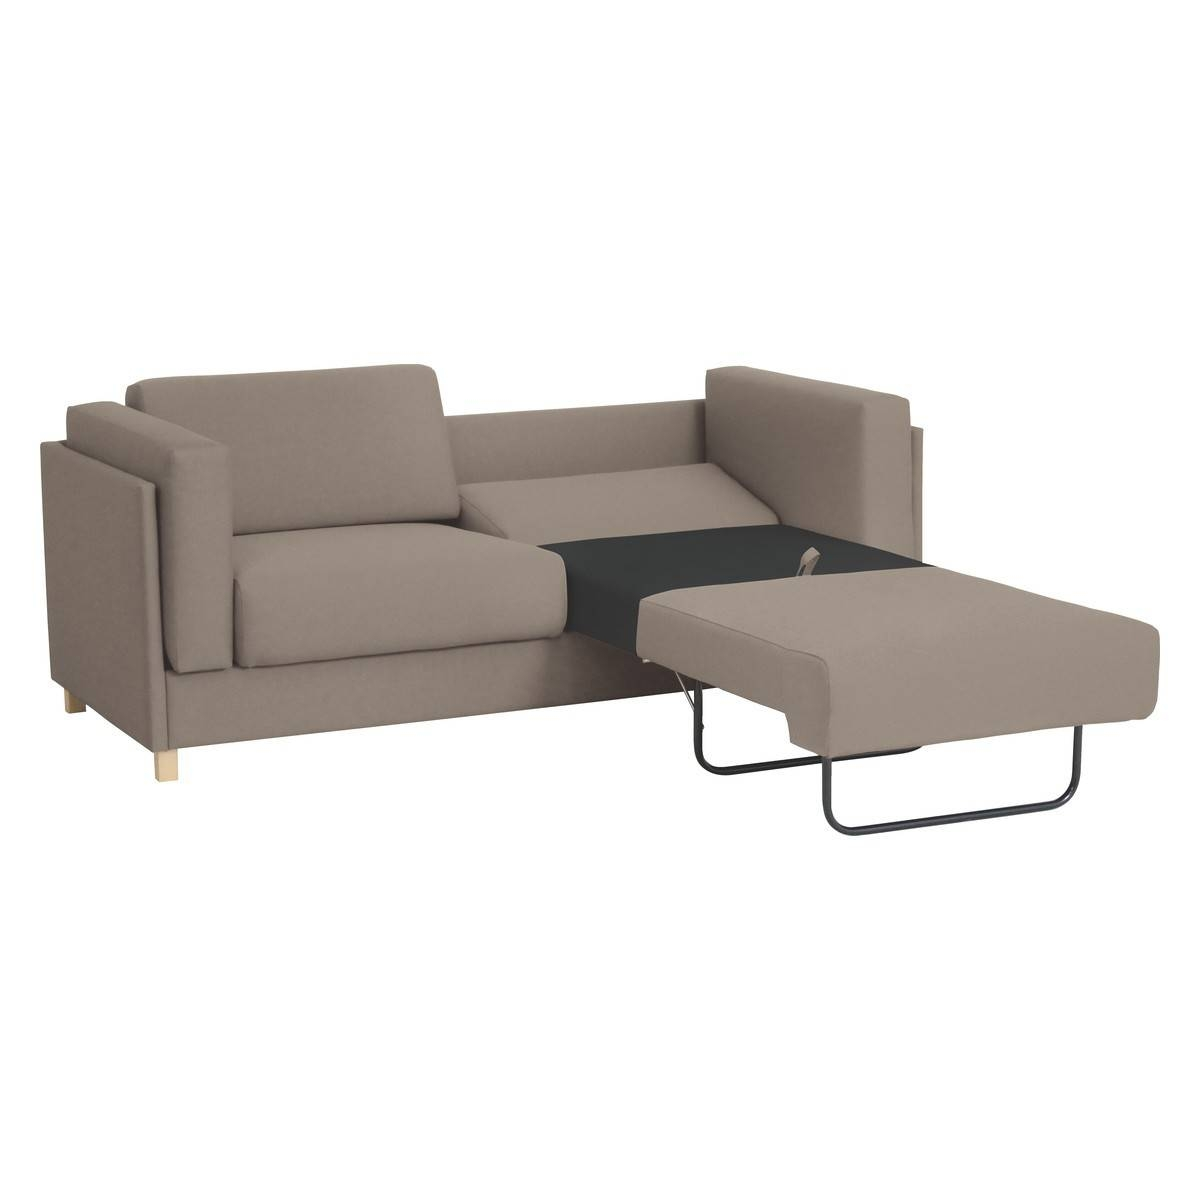 jazz sofa review where to sell used in kl habitat barcelona stkittsvilla